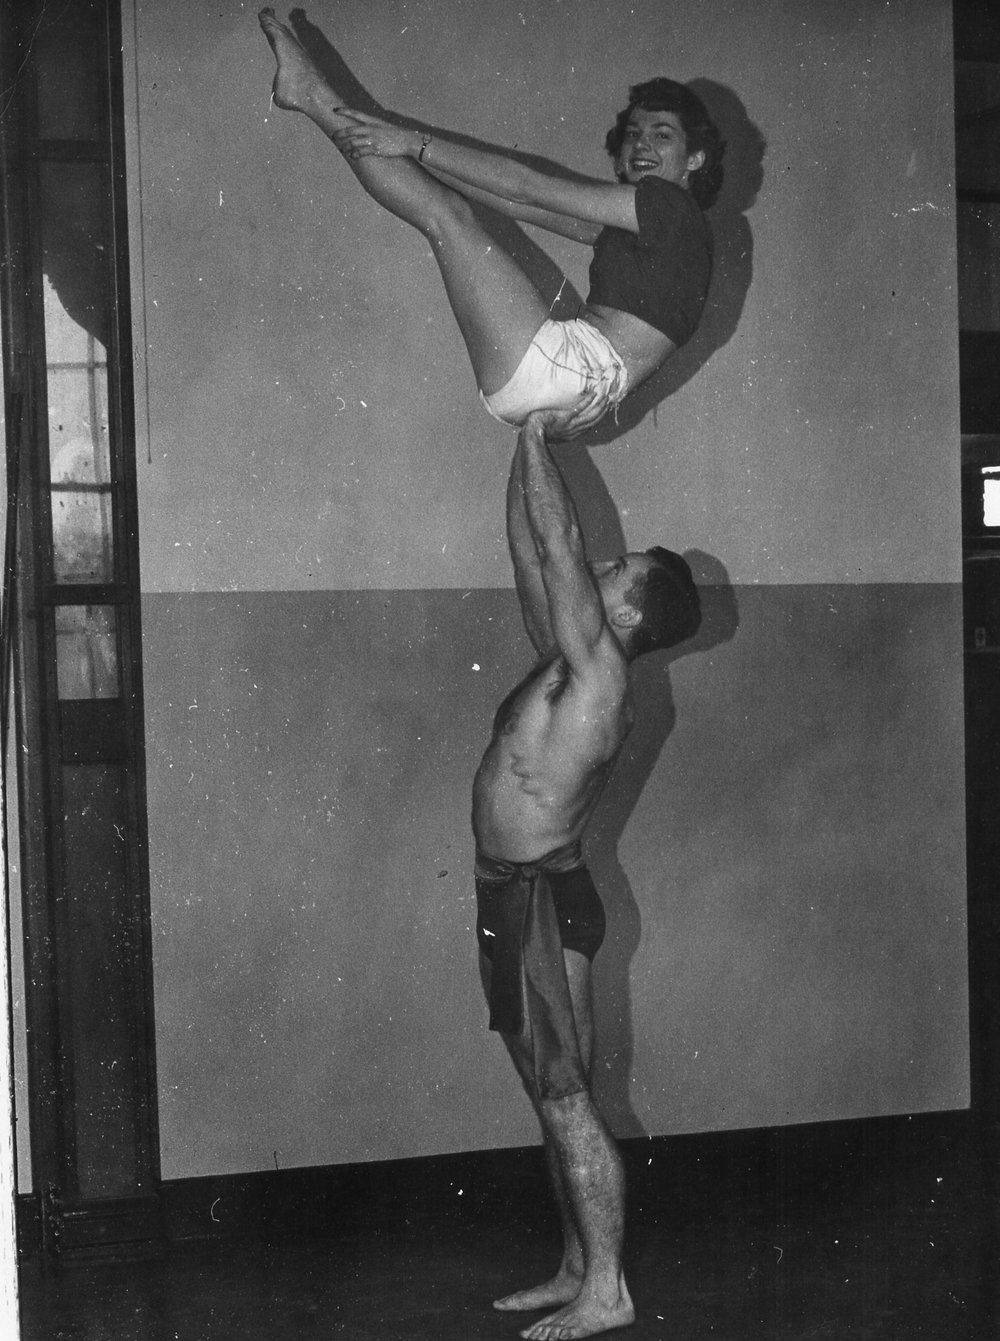 Mixed Doubles Balancing (1950)